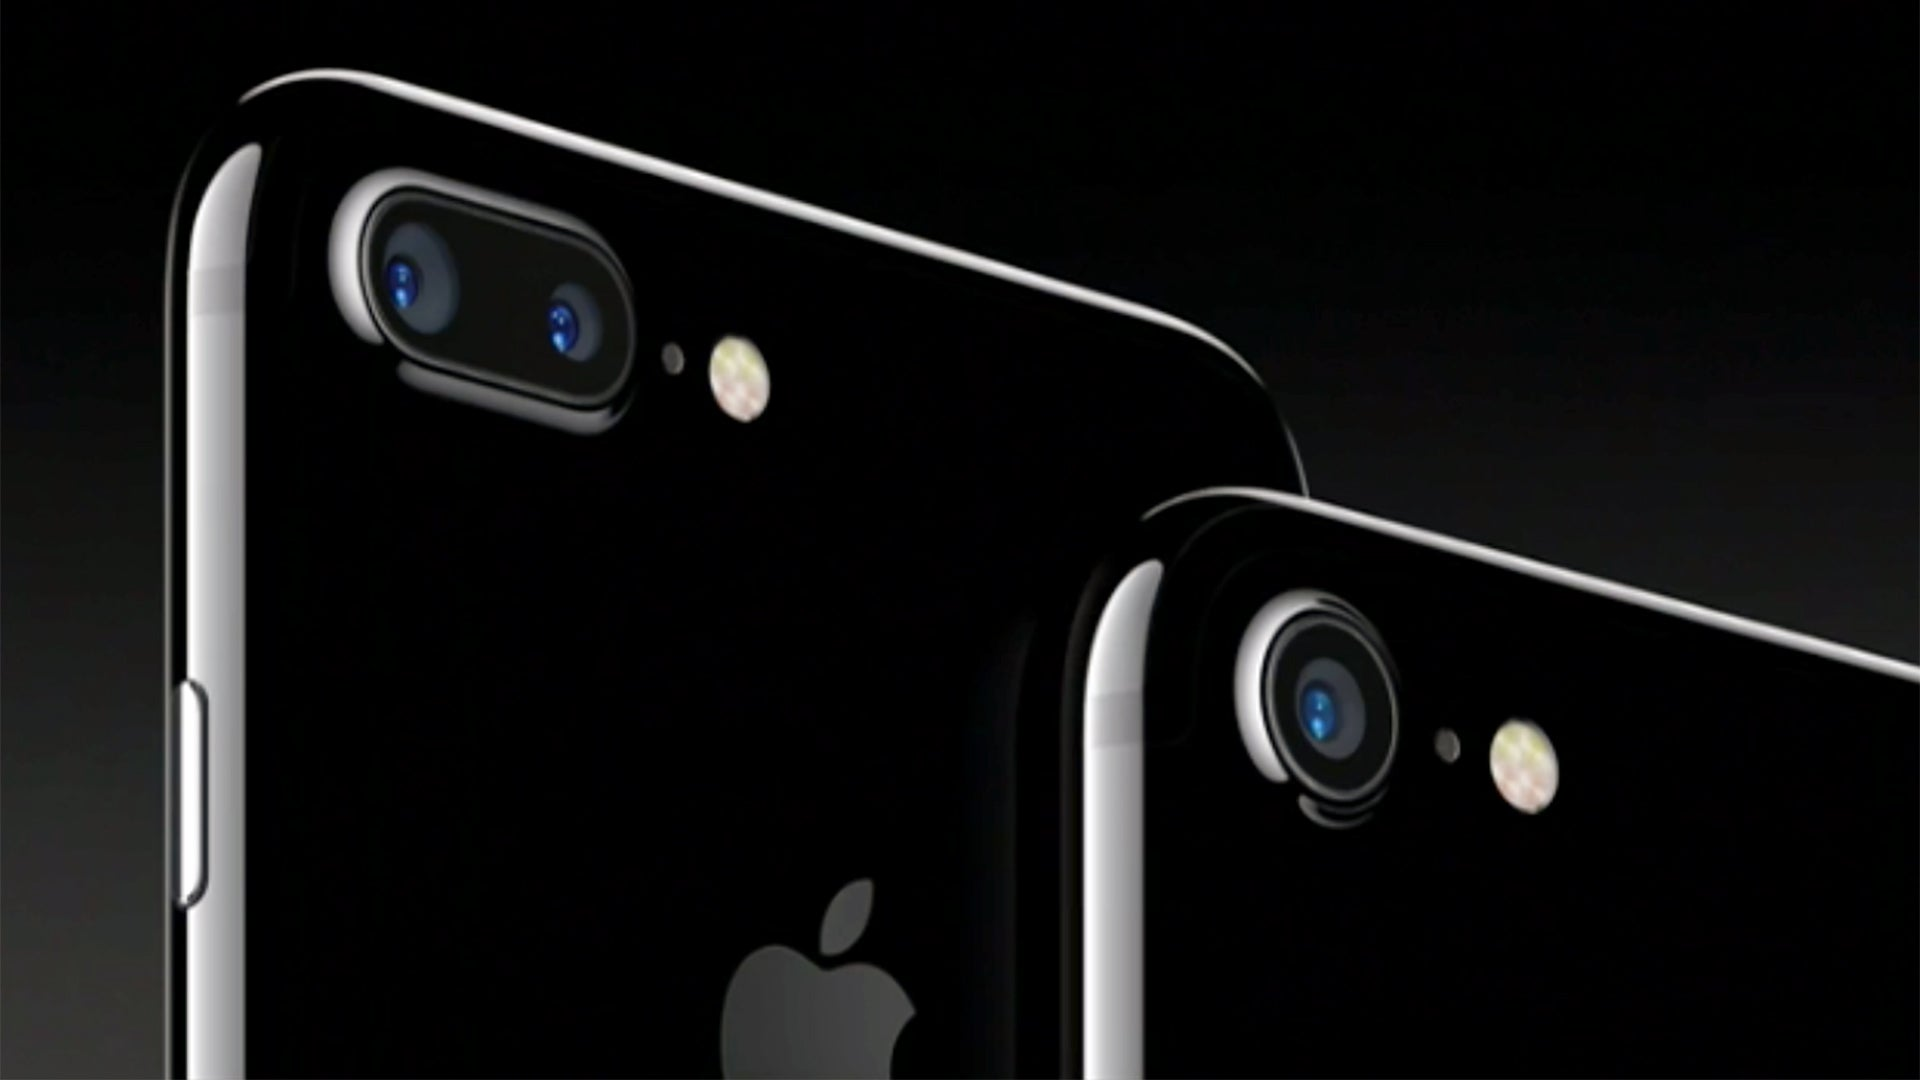 Wallpaper iphone jet black - Apple Just Secretly Admitted That The Jet Black Iphone 7 Will Scratch Really Easily Trusted Reviews